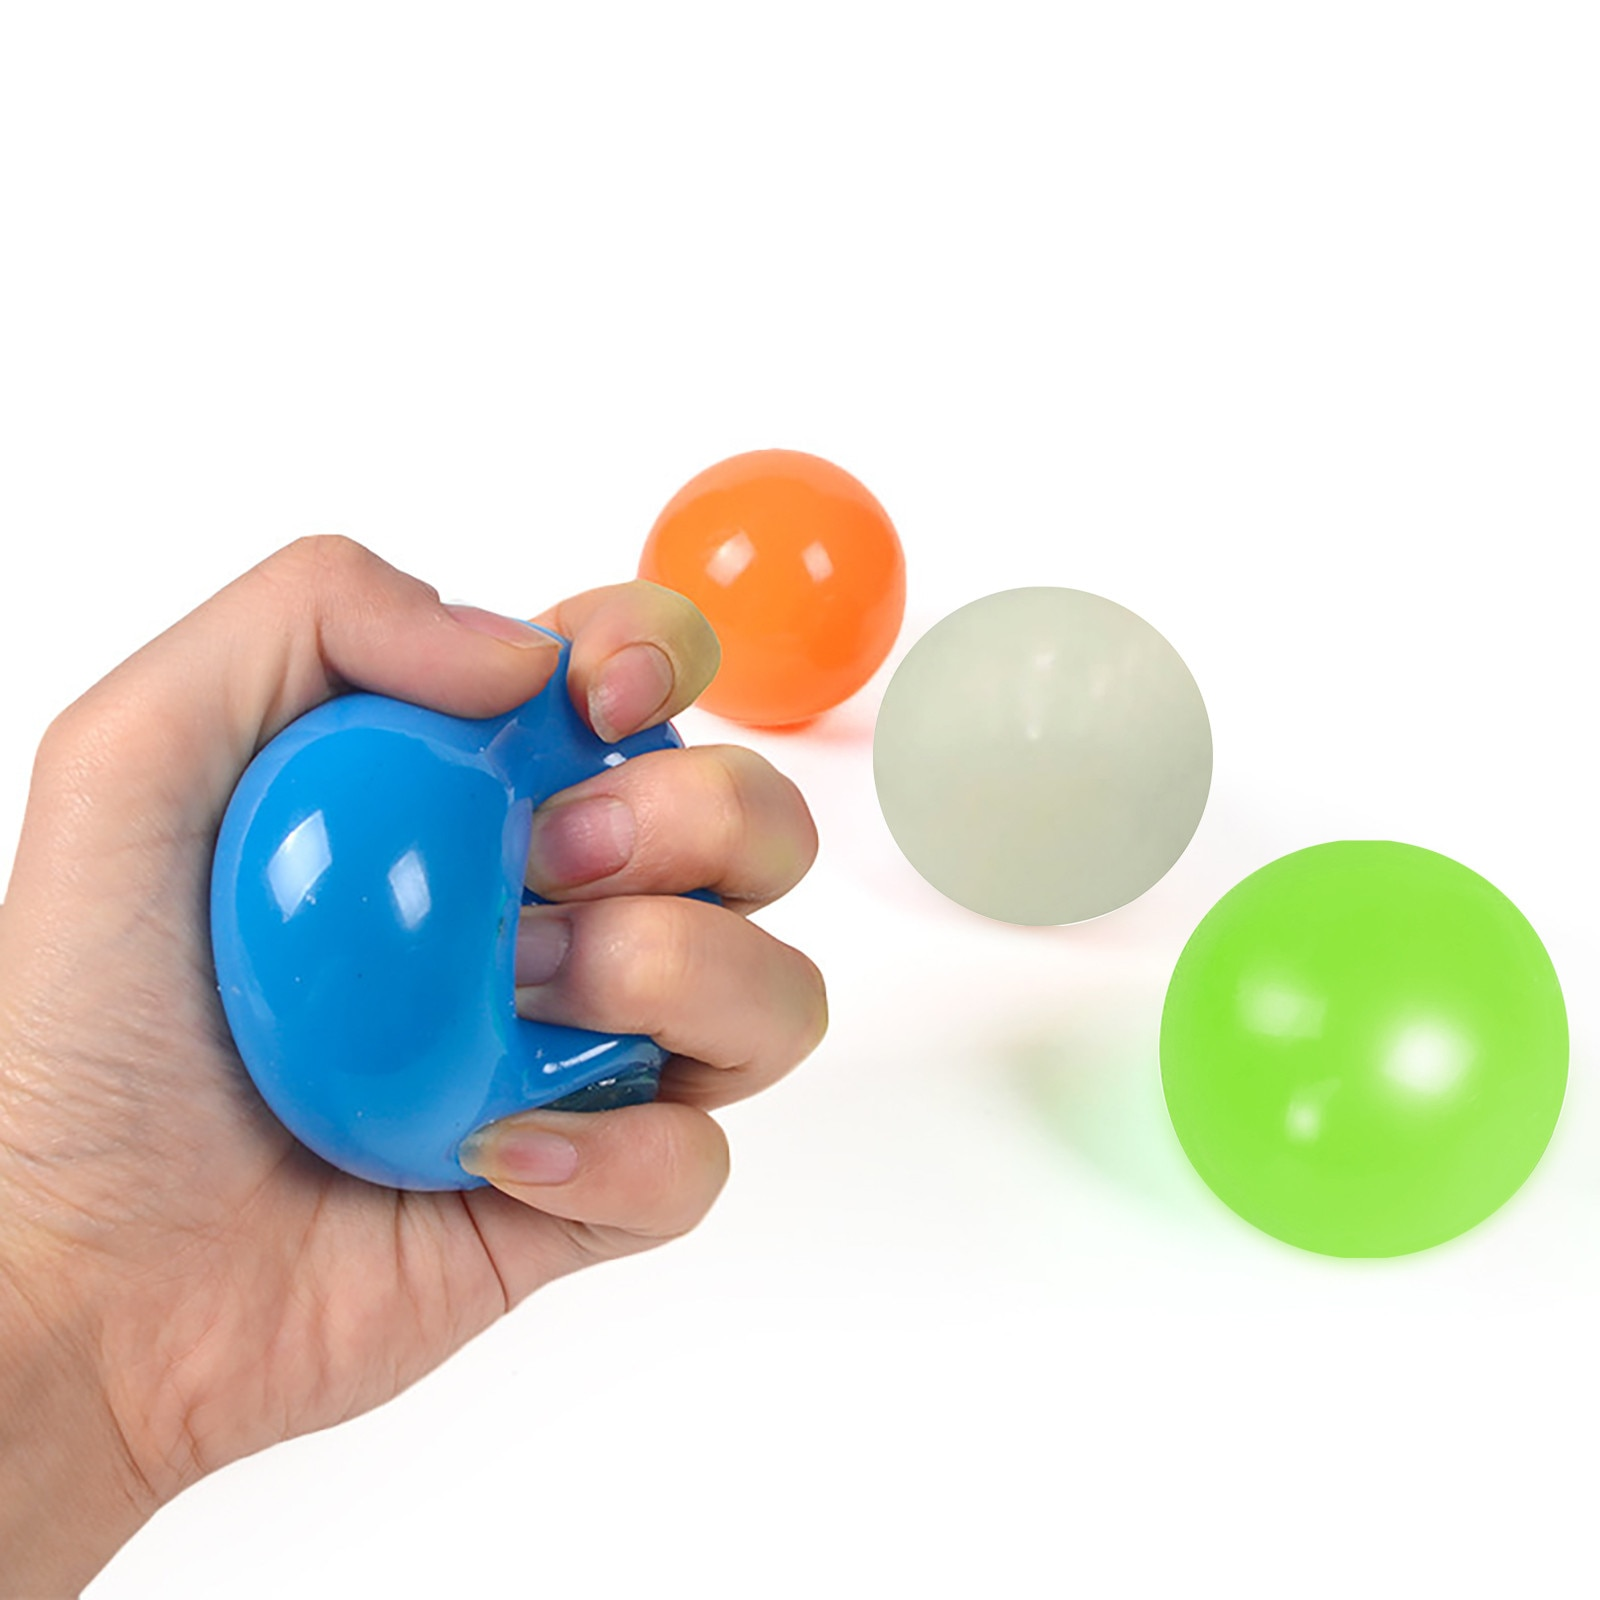 Fluorescent Sticky Wall Ball Sticky Target Ball Decompression Toy Kids Gift Fidget Toys Toys For Adults 18 Stress Stress Ball enlarge